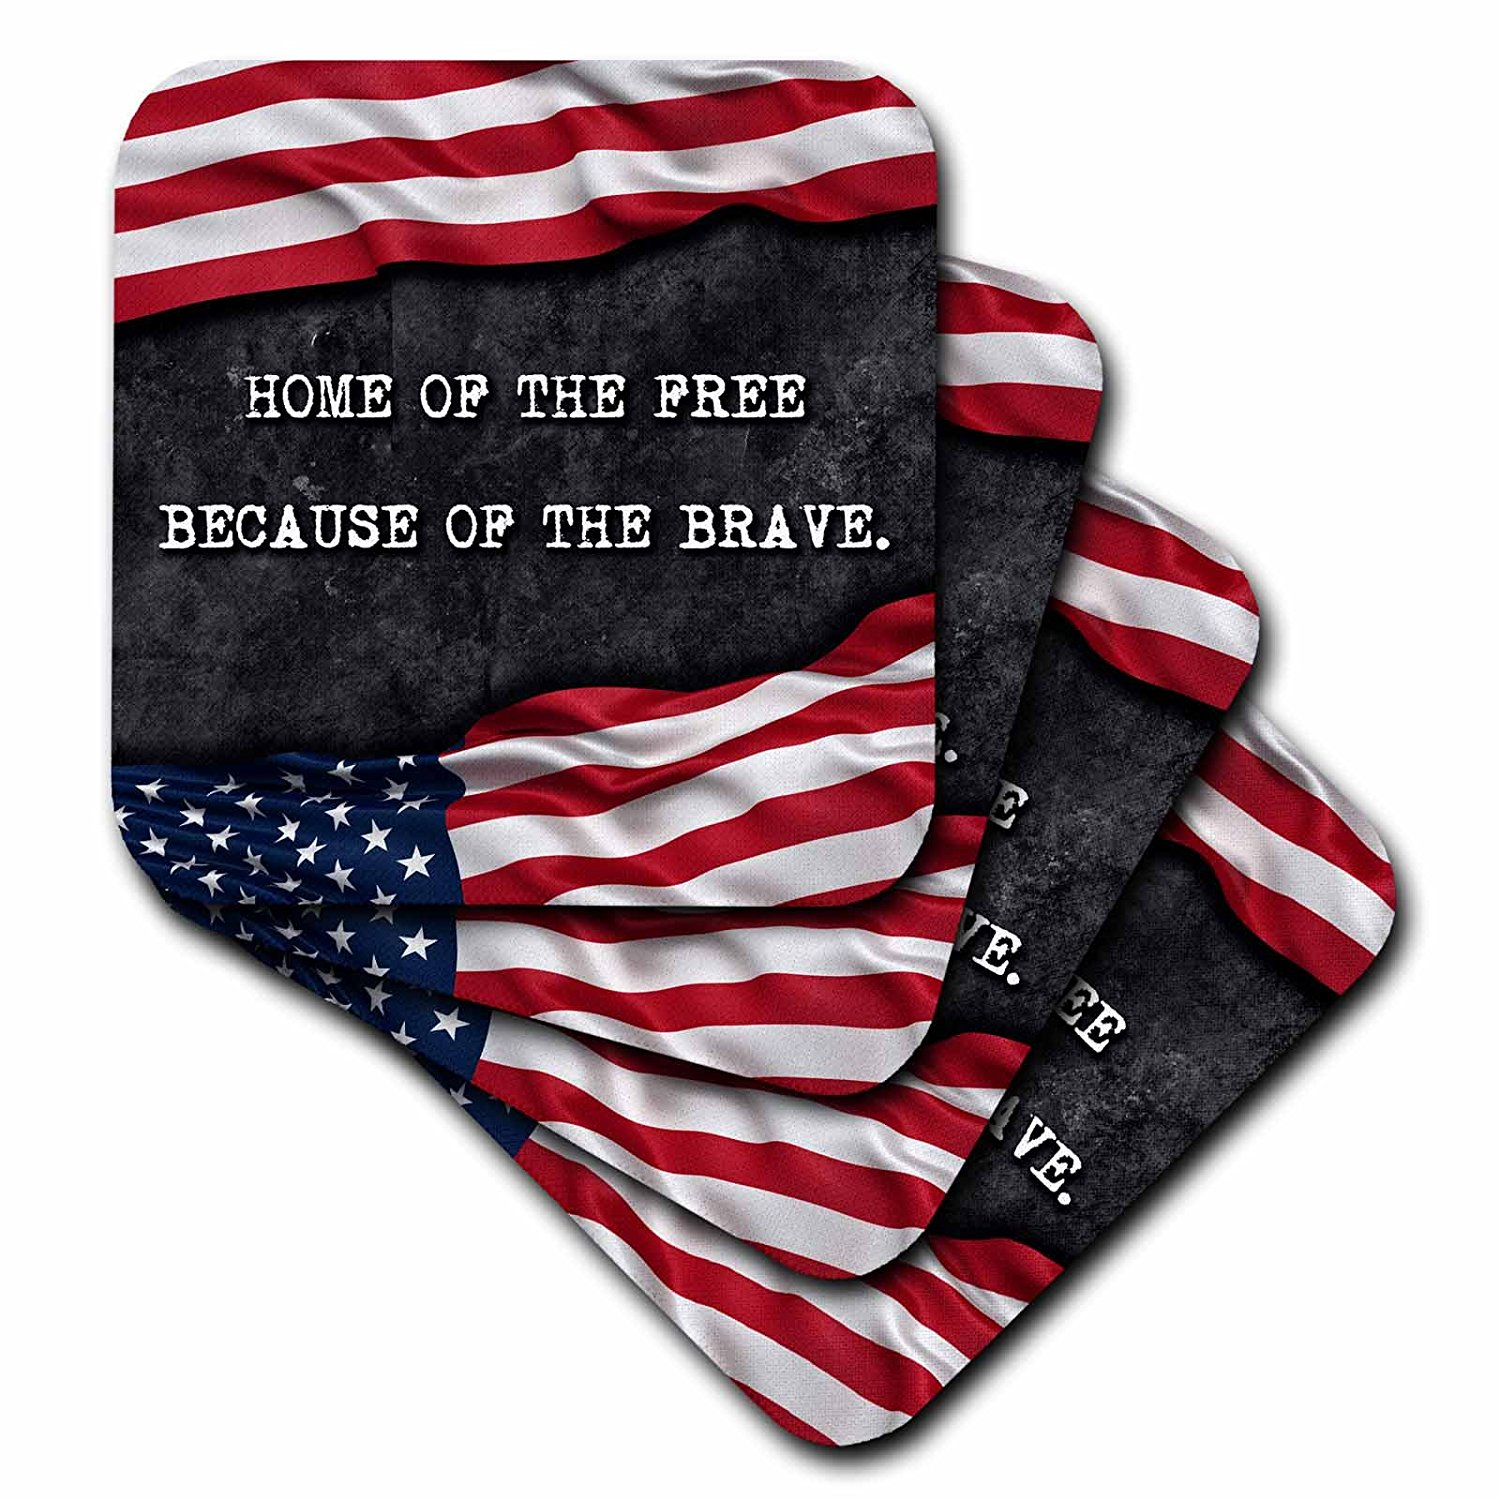 Carsten Reisinger - Illustrations - Home of the free because of the brave. Patriotic quote. - set of 4 Coasters - Soft (cst_237417_1)